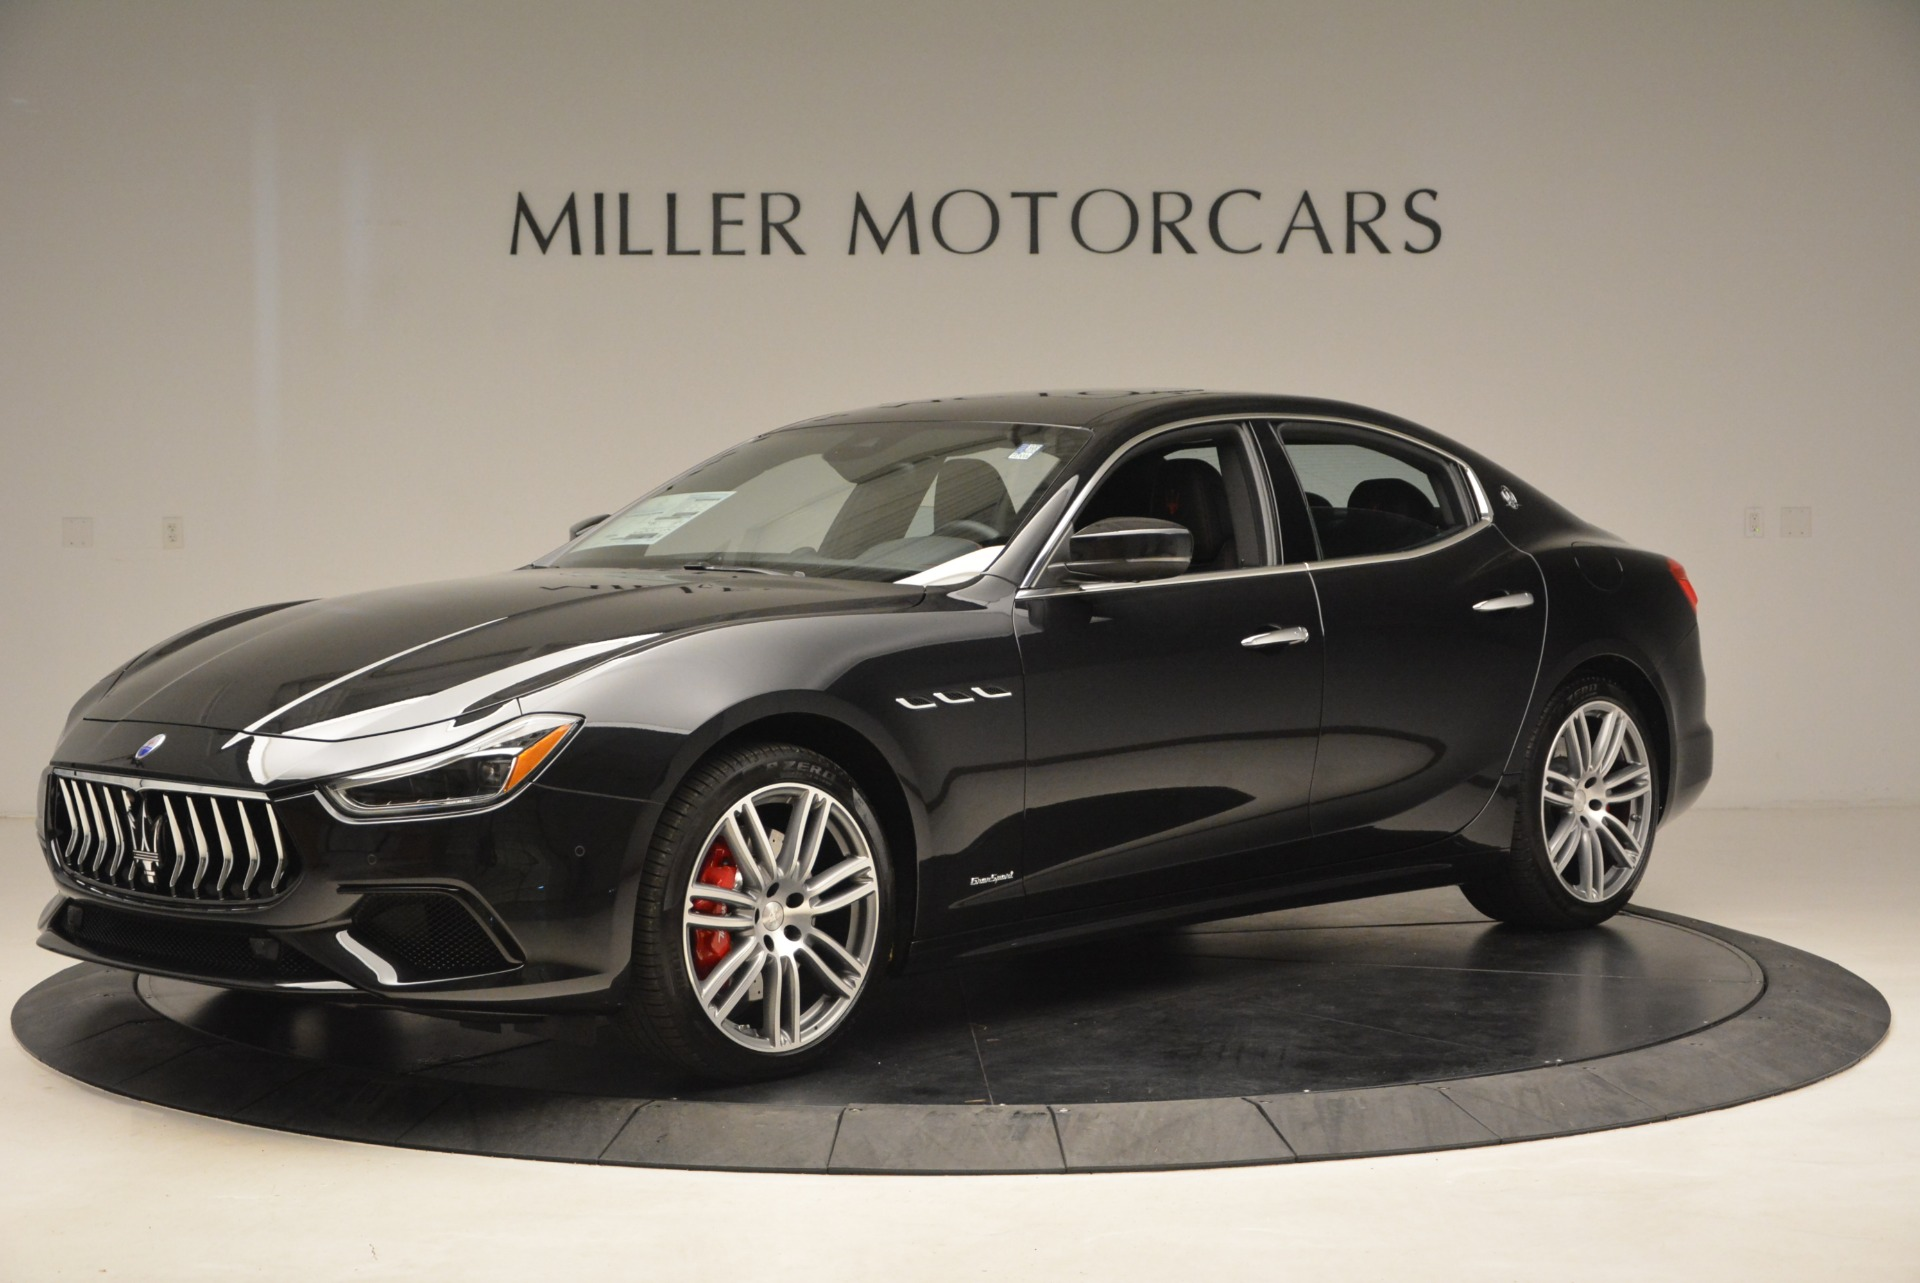 New 2019 Maserati Ghibli S Q4 GranSport For Sale In Westport, CT 2597_p2